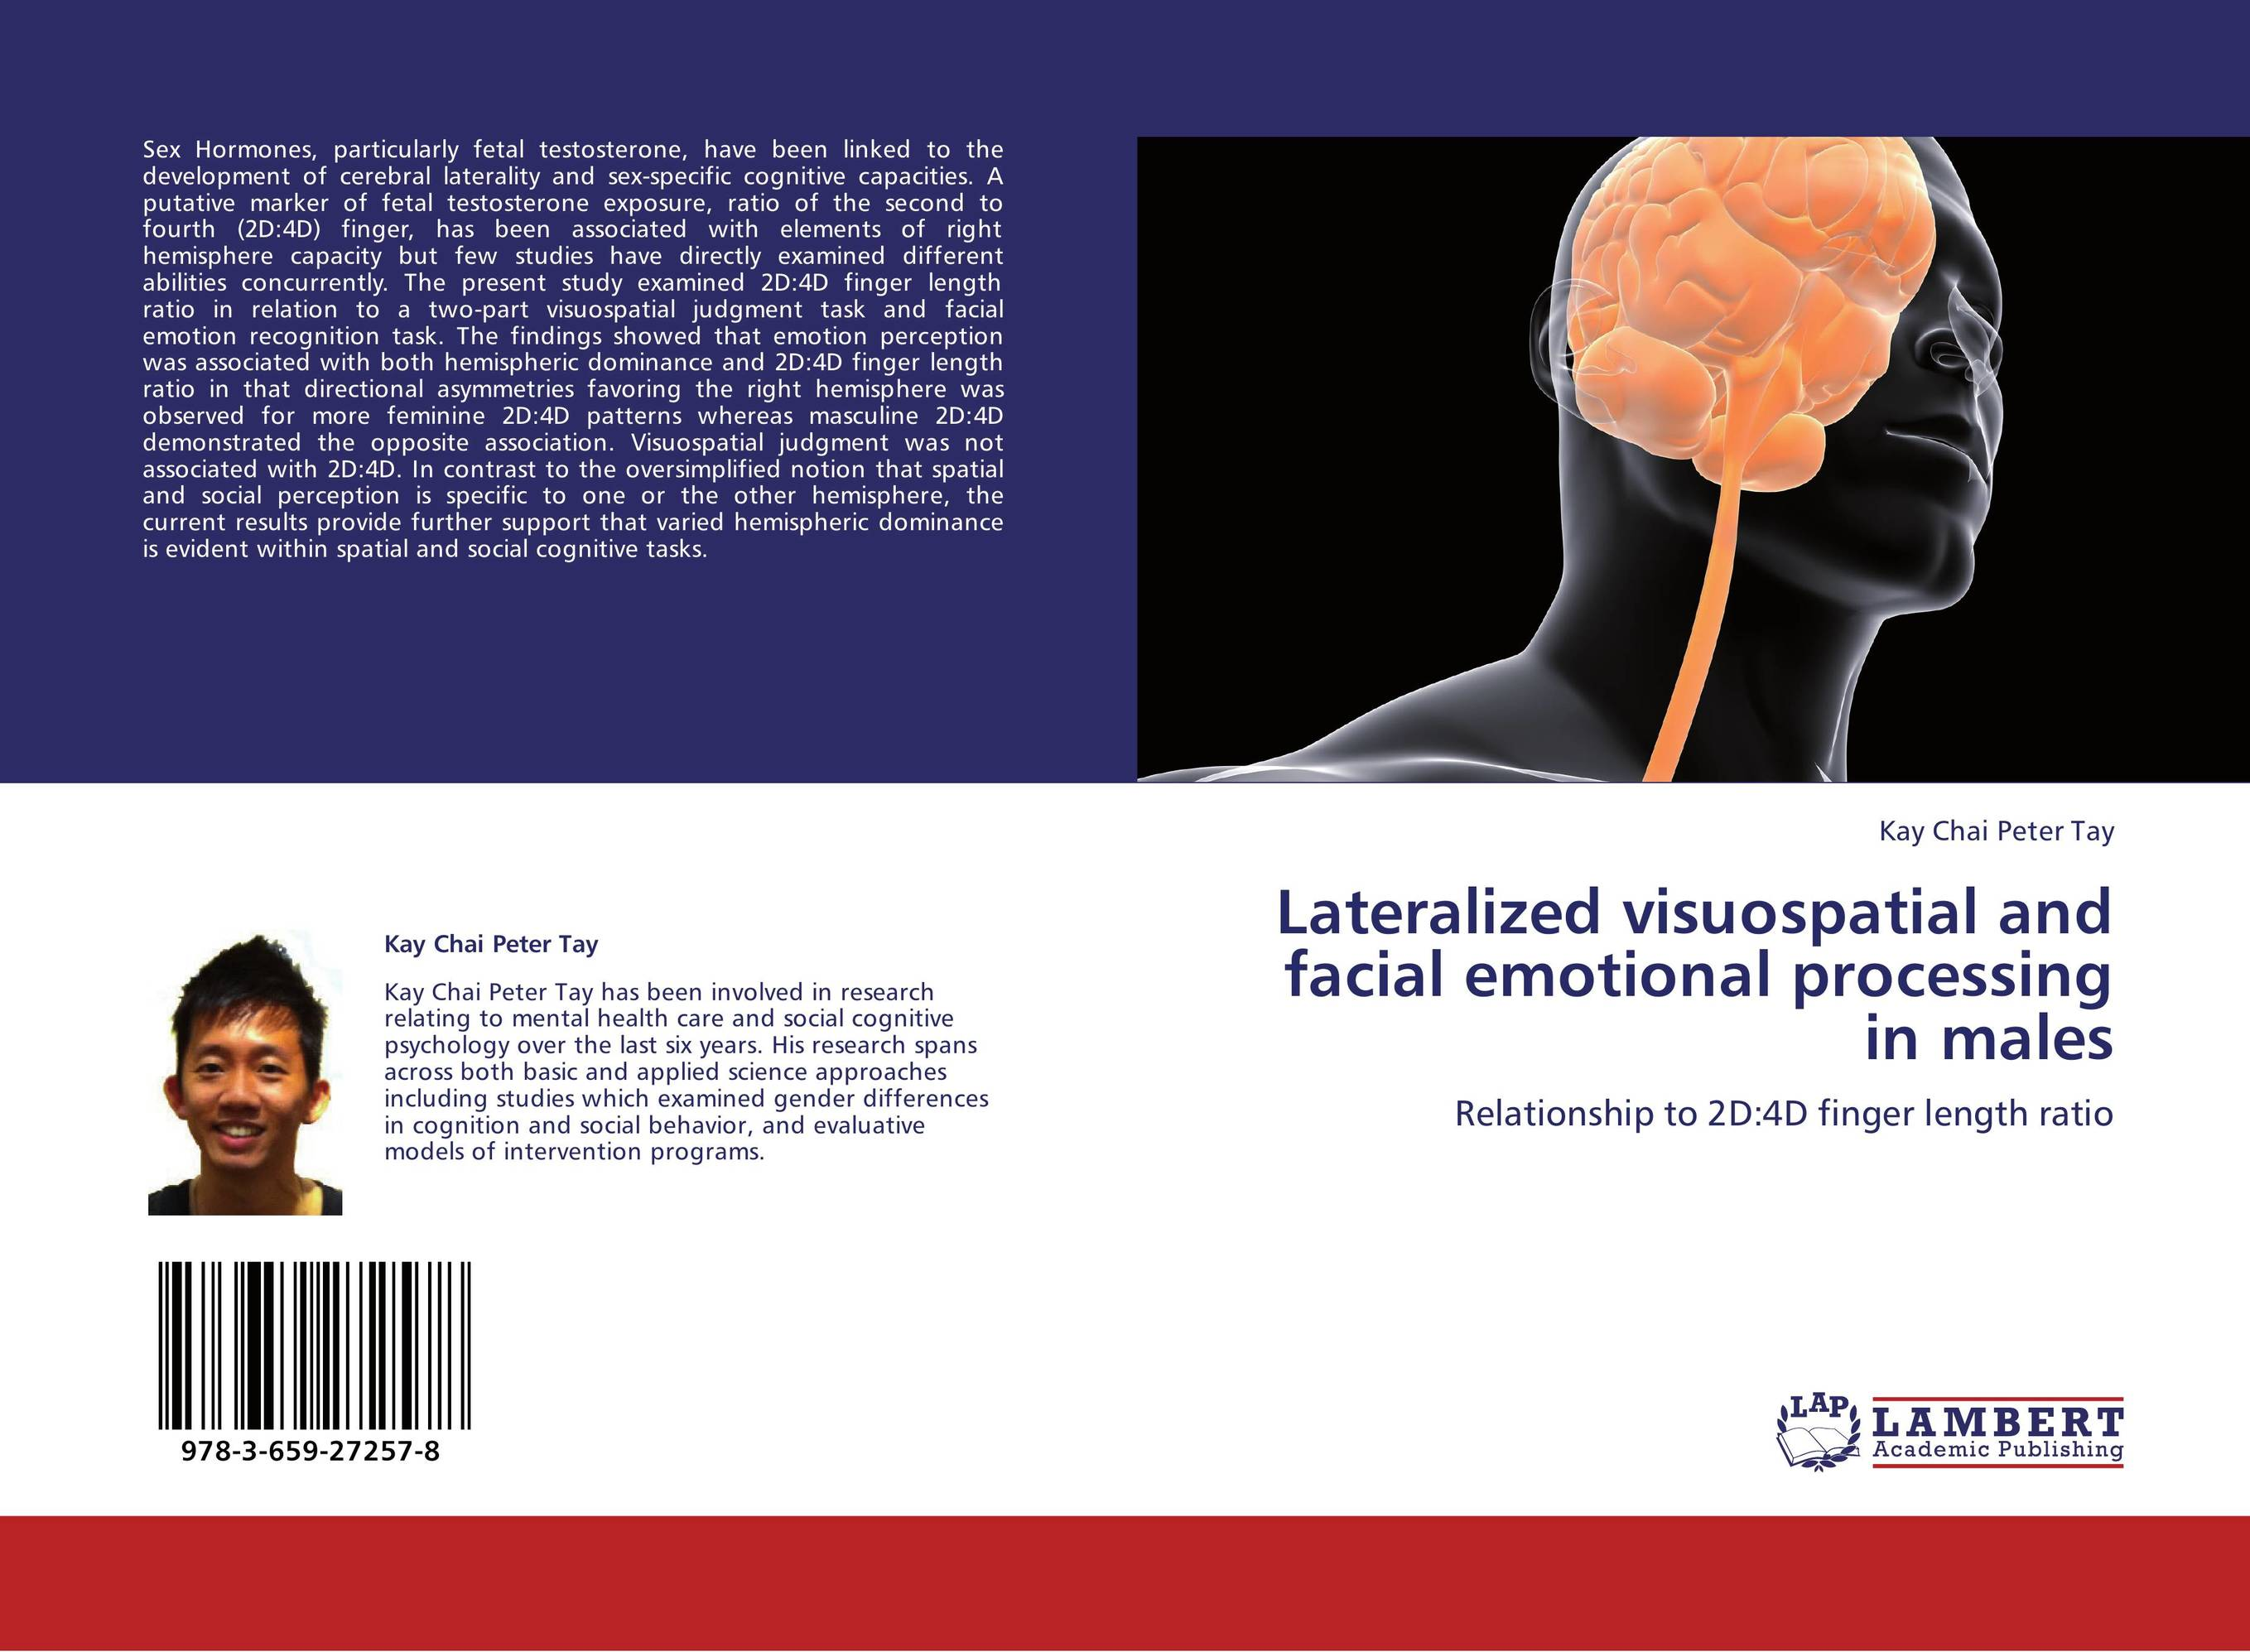 an analysis of asymmetry in facial emotional expression This video demonstrates the technology developed in advanced digital sciences center (adsc) in singapore, for real-time facial expression analysis and.